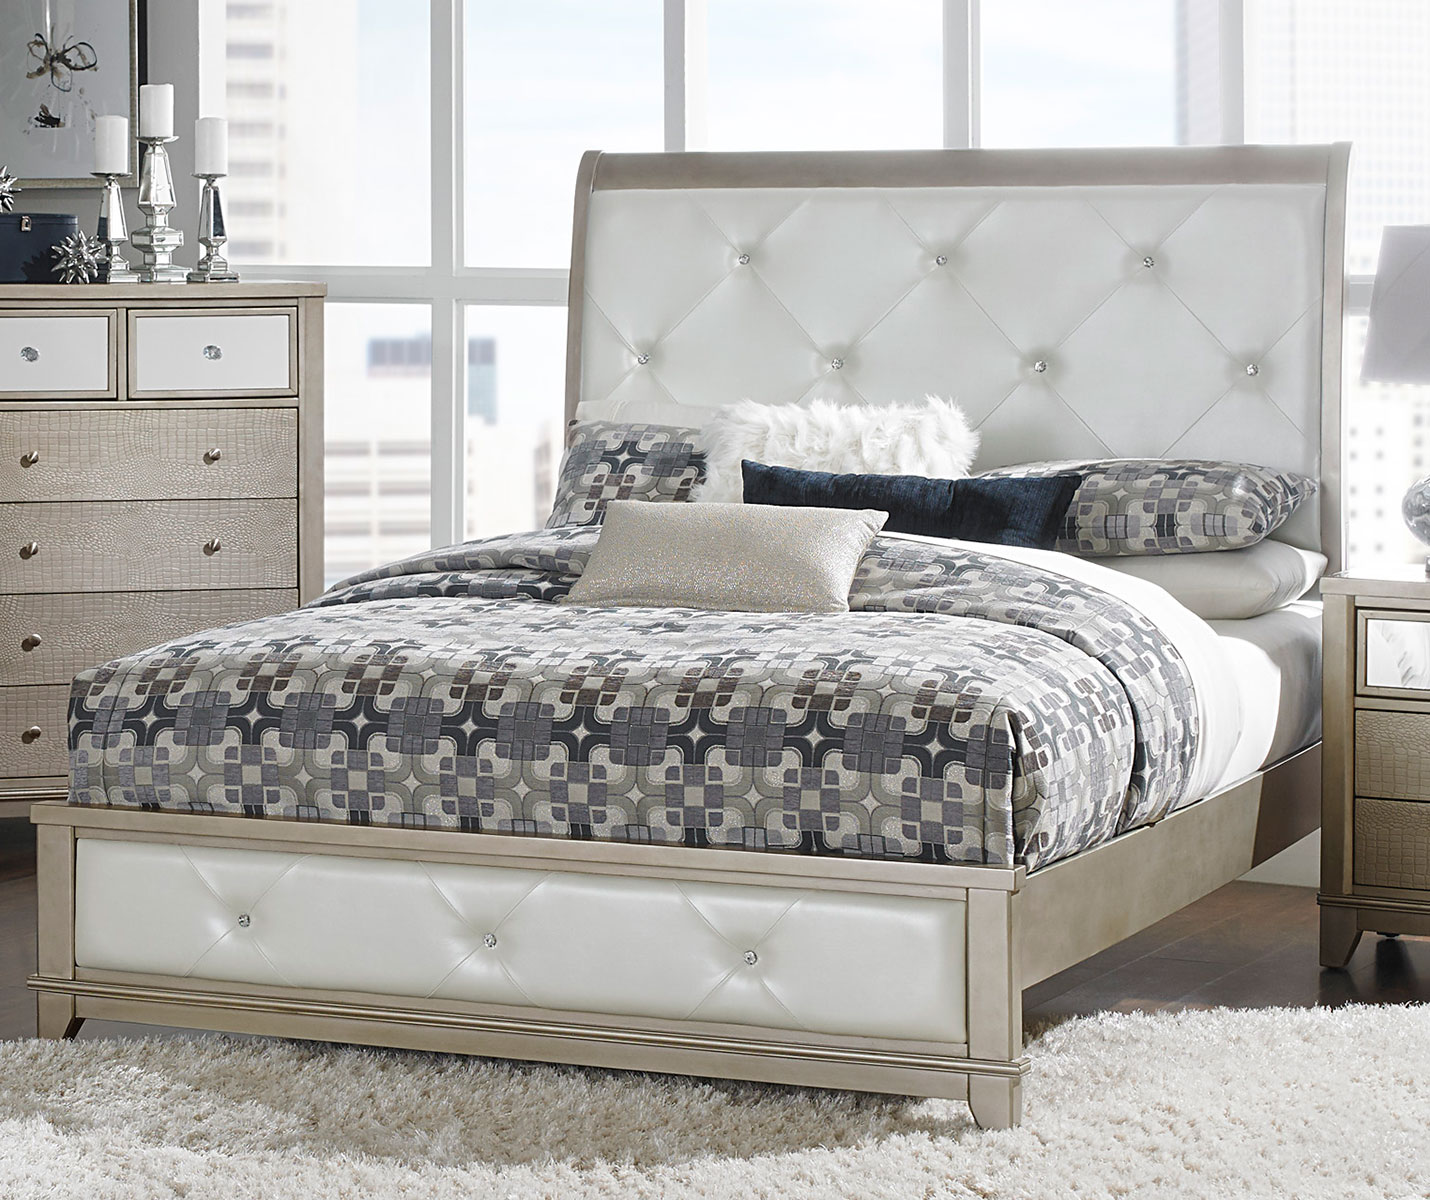 Homelegance Odelia Button Tufted Upholstered Sleigh Bed - Silver